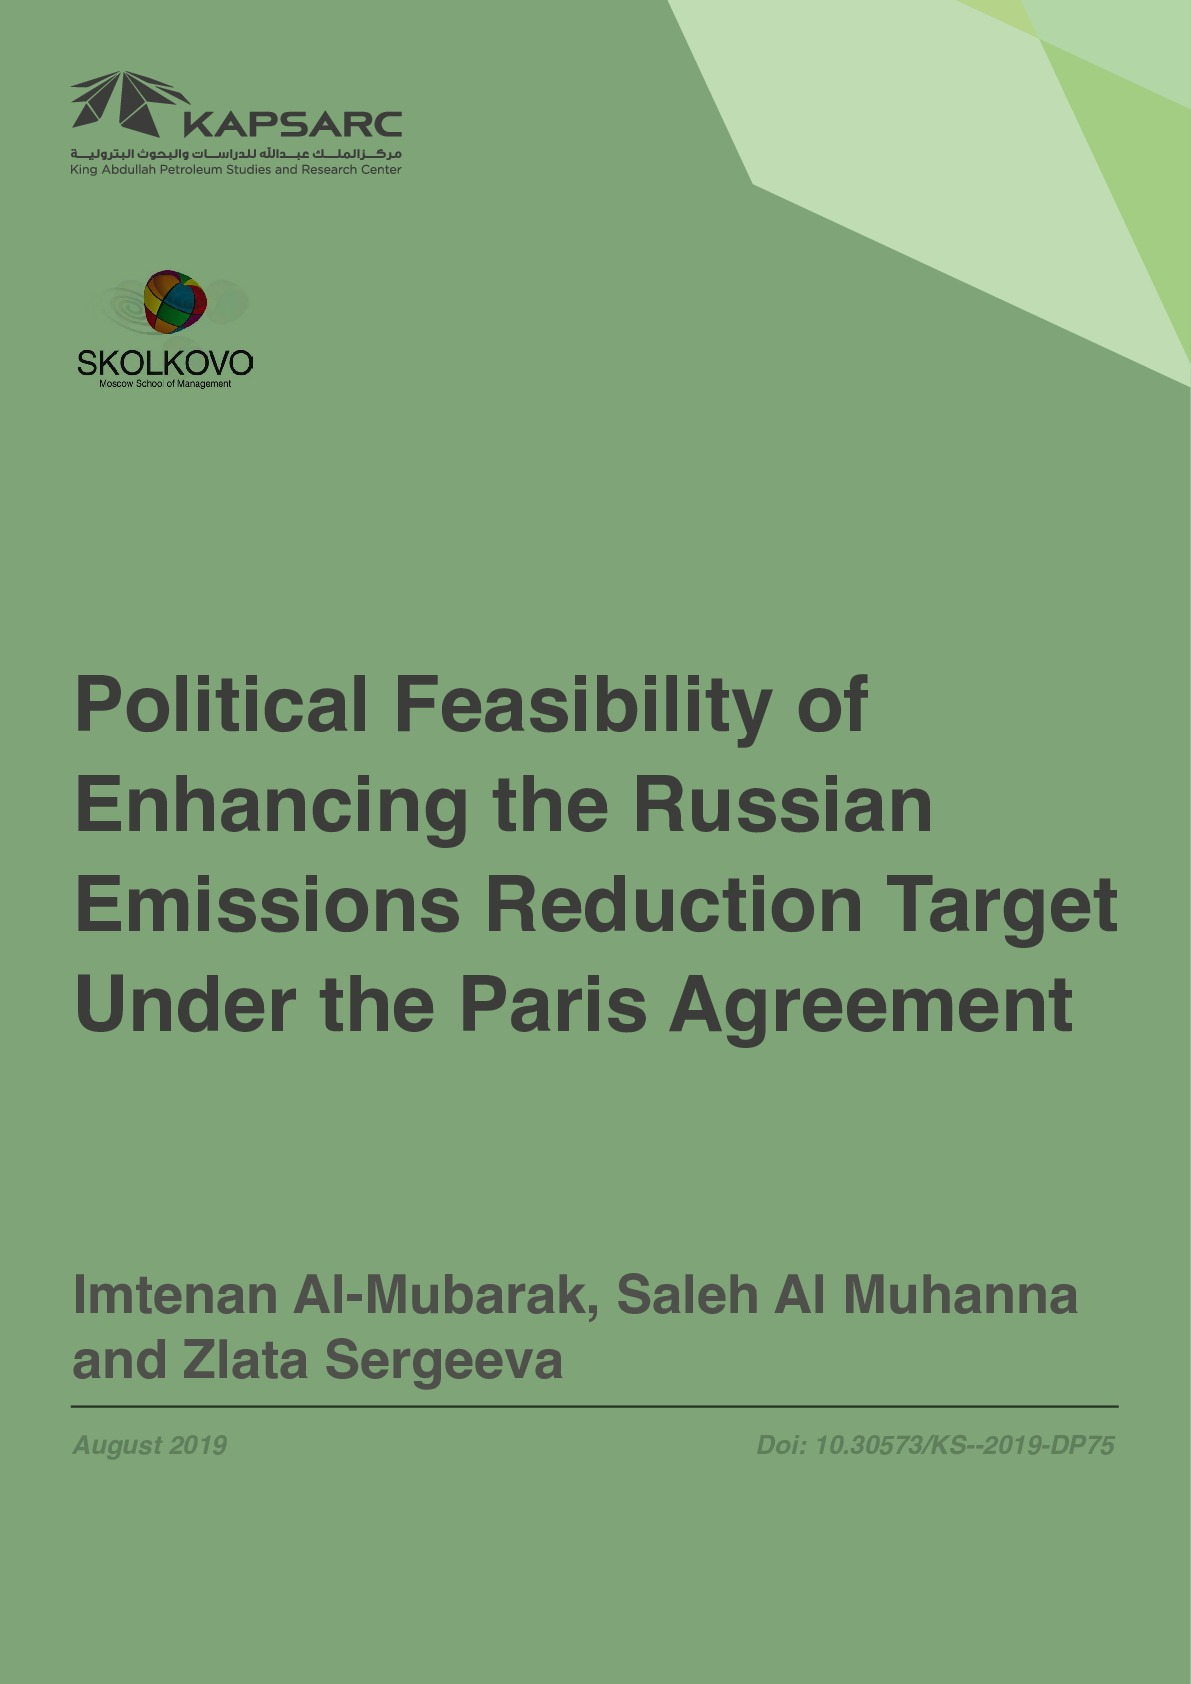 Political Feasibility of Enhancing the Russian Emissions Reduction Target Under the Paris Agreement